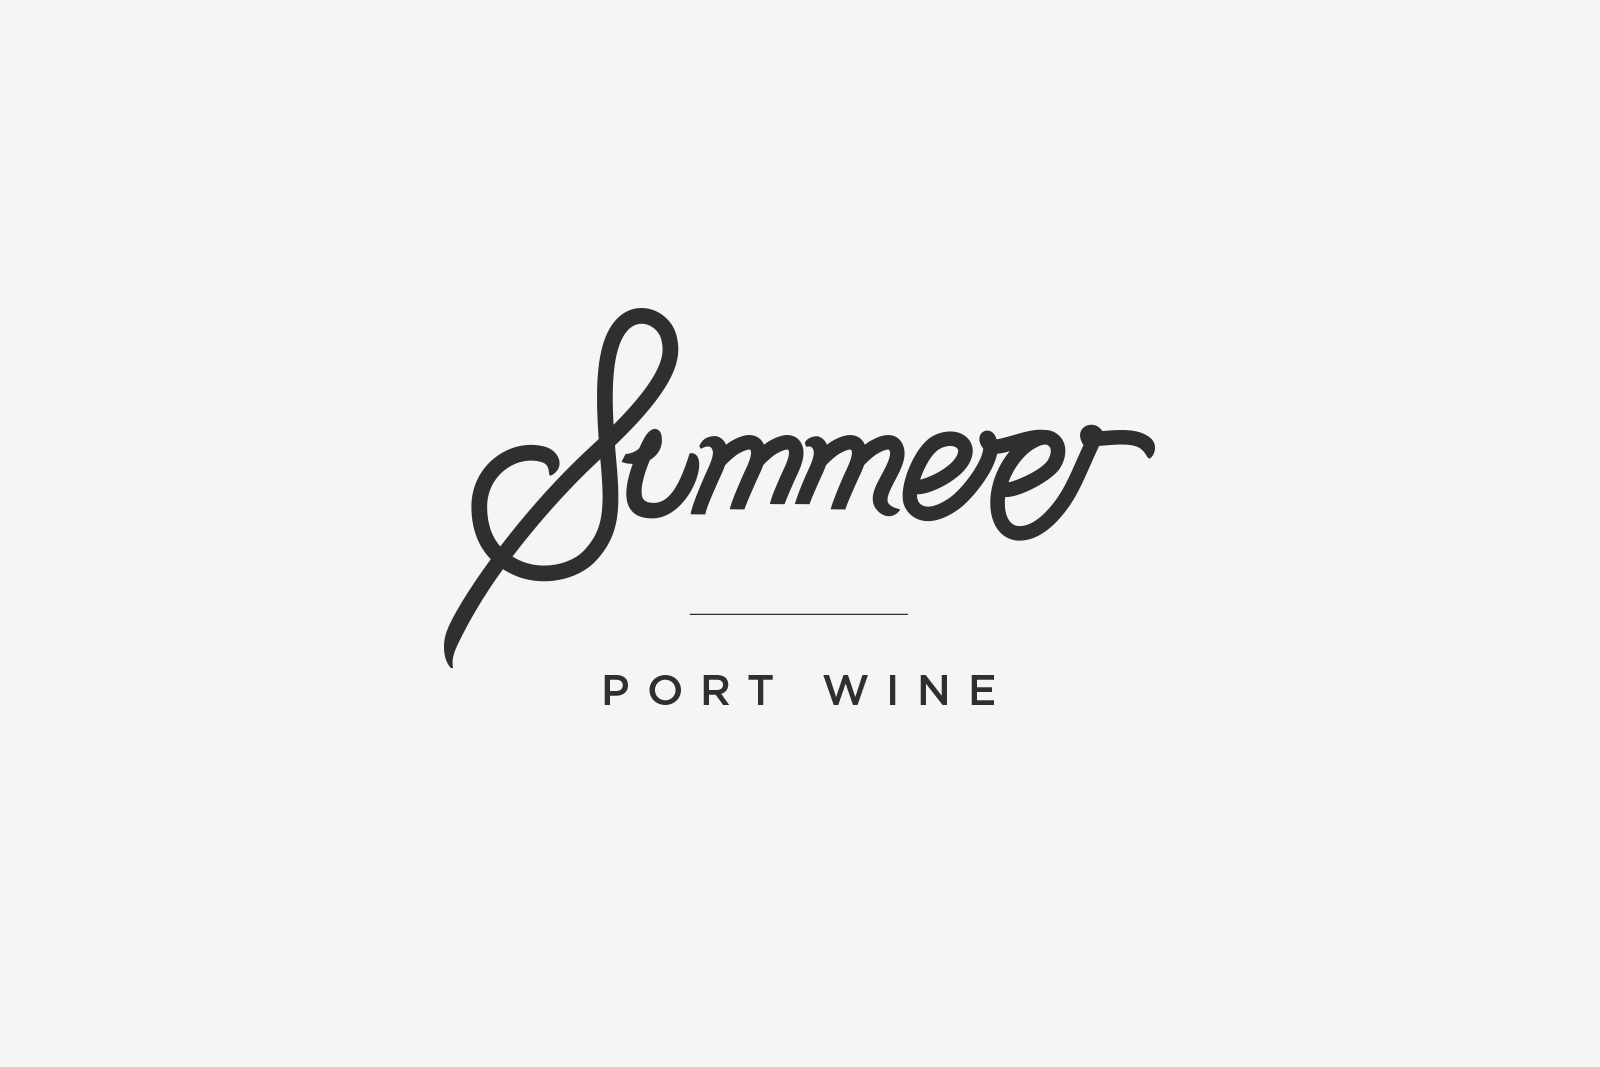 Logo Summerer Port Bw